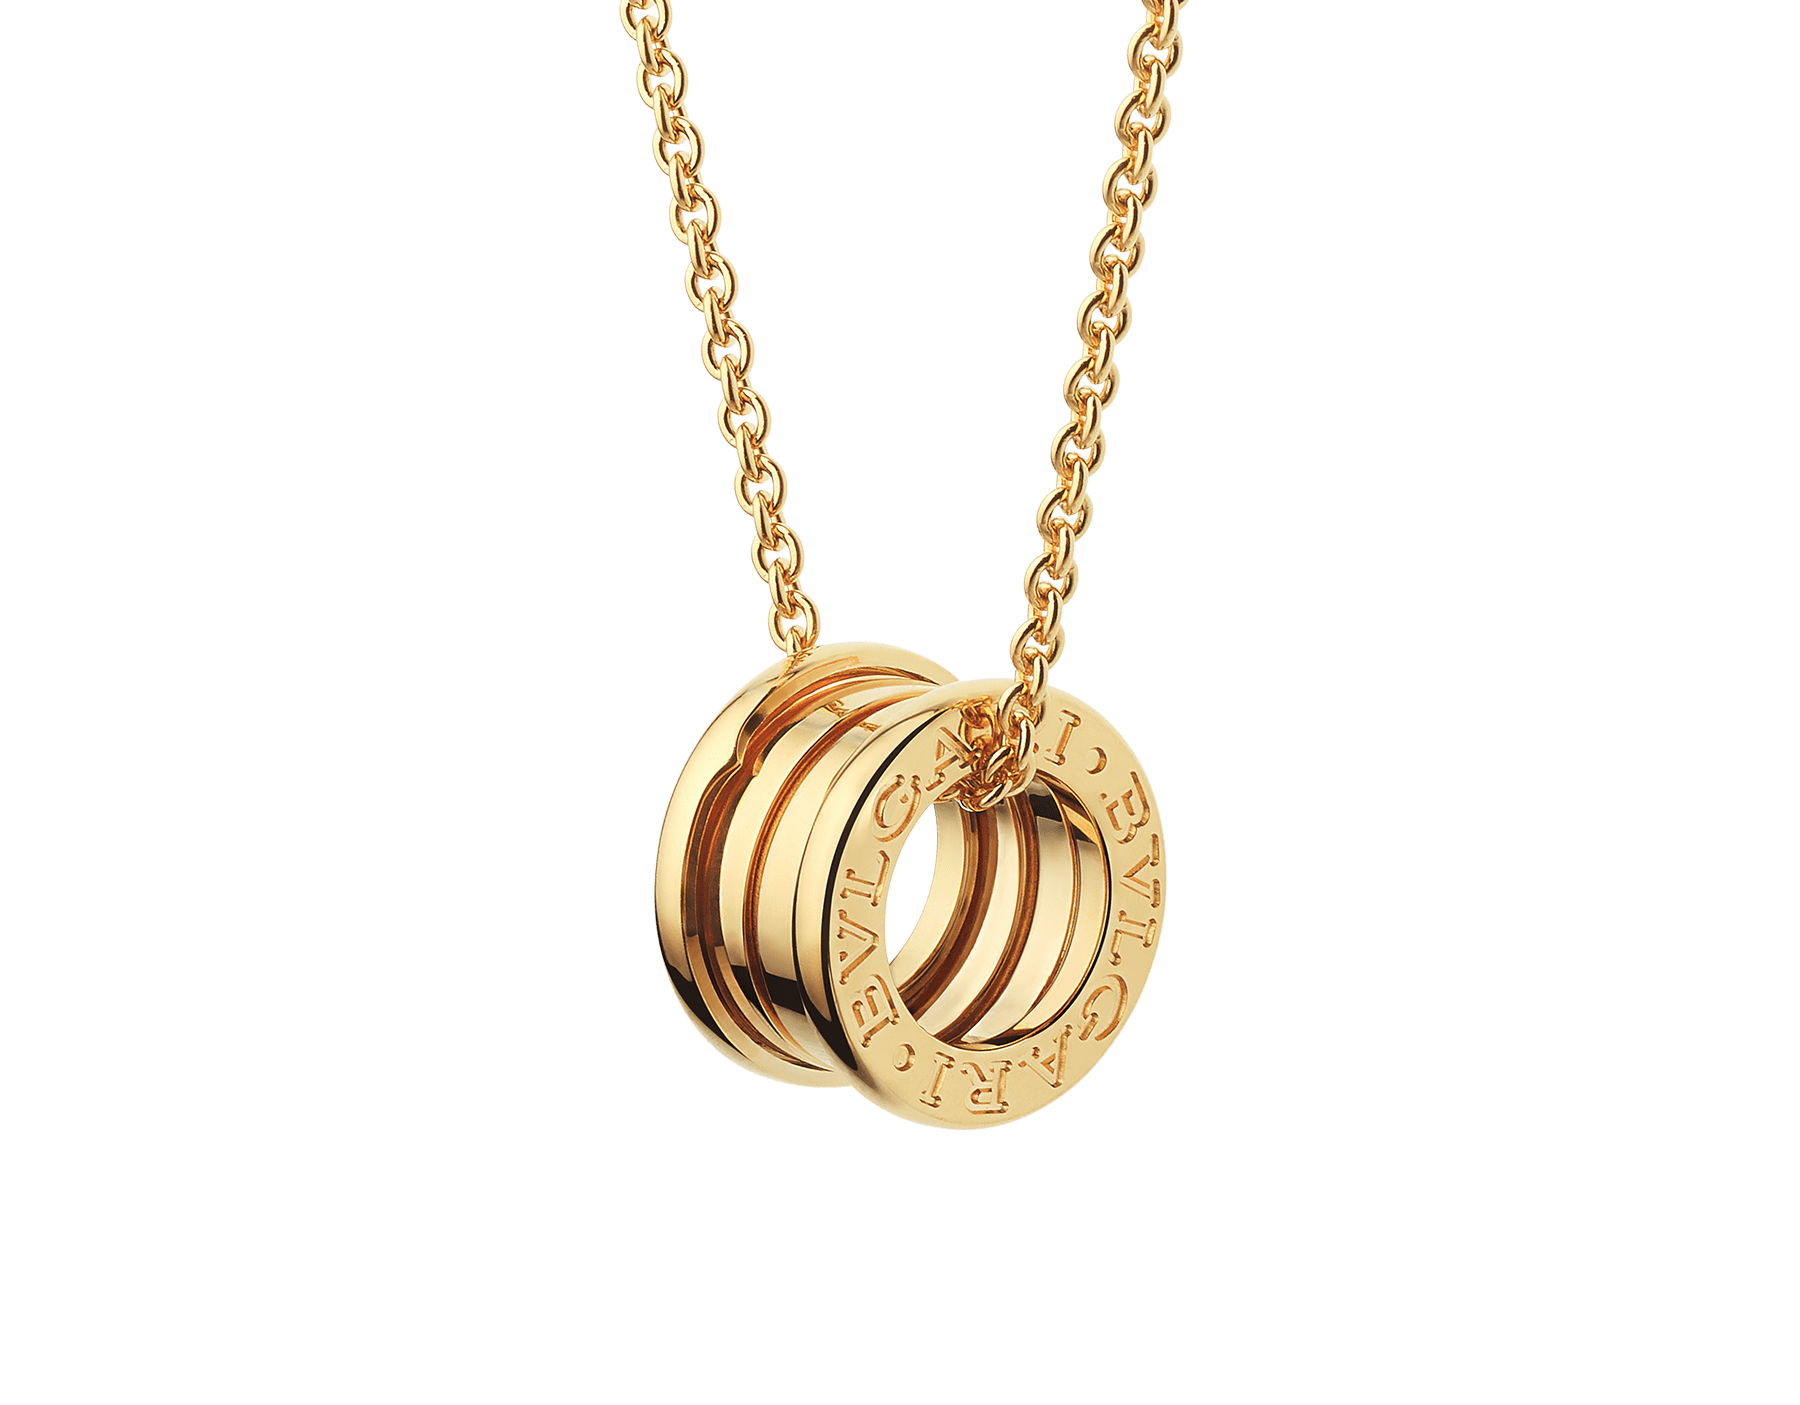 B.zero1 necklace with small round pendant, both in 18kt yellow gold. 352814 image 1